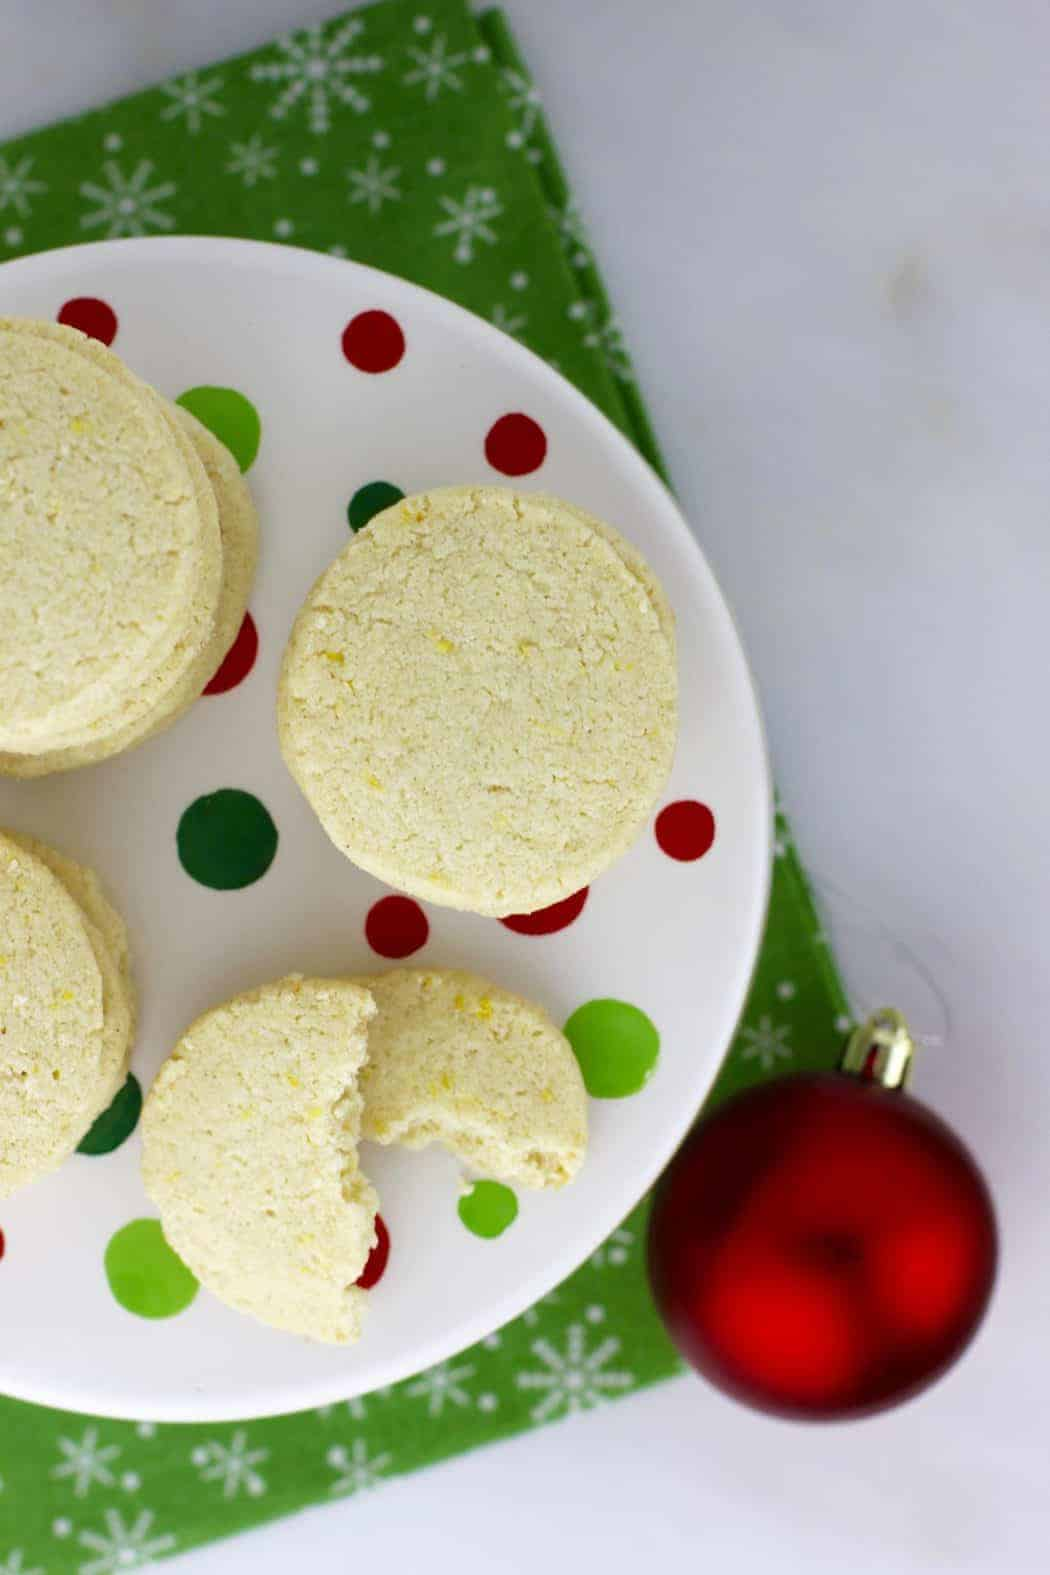 Overhead view of Gluten-Free Lemon-Shortbread Cookies on a Christmas plate